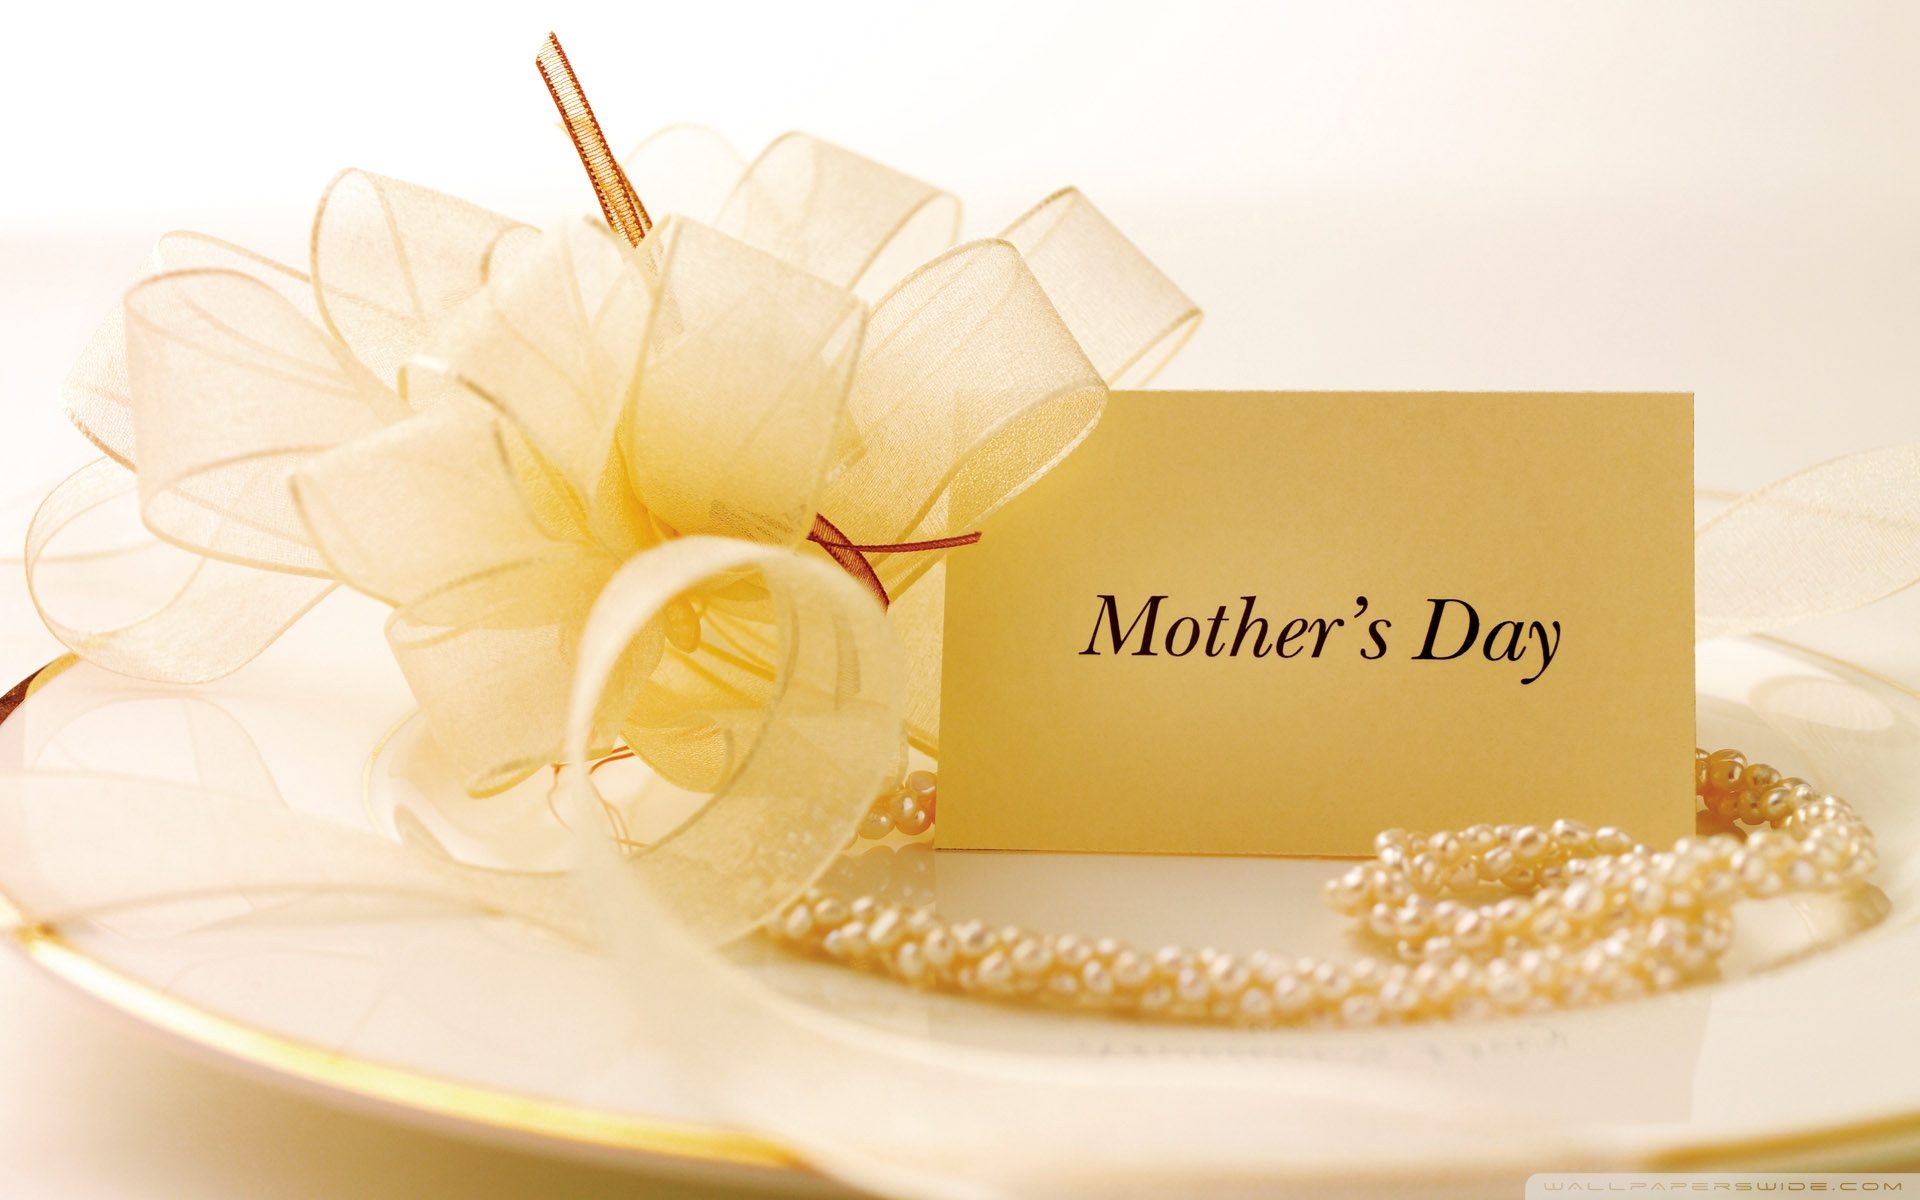 Mothers Day Wallpaper HD